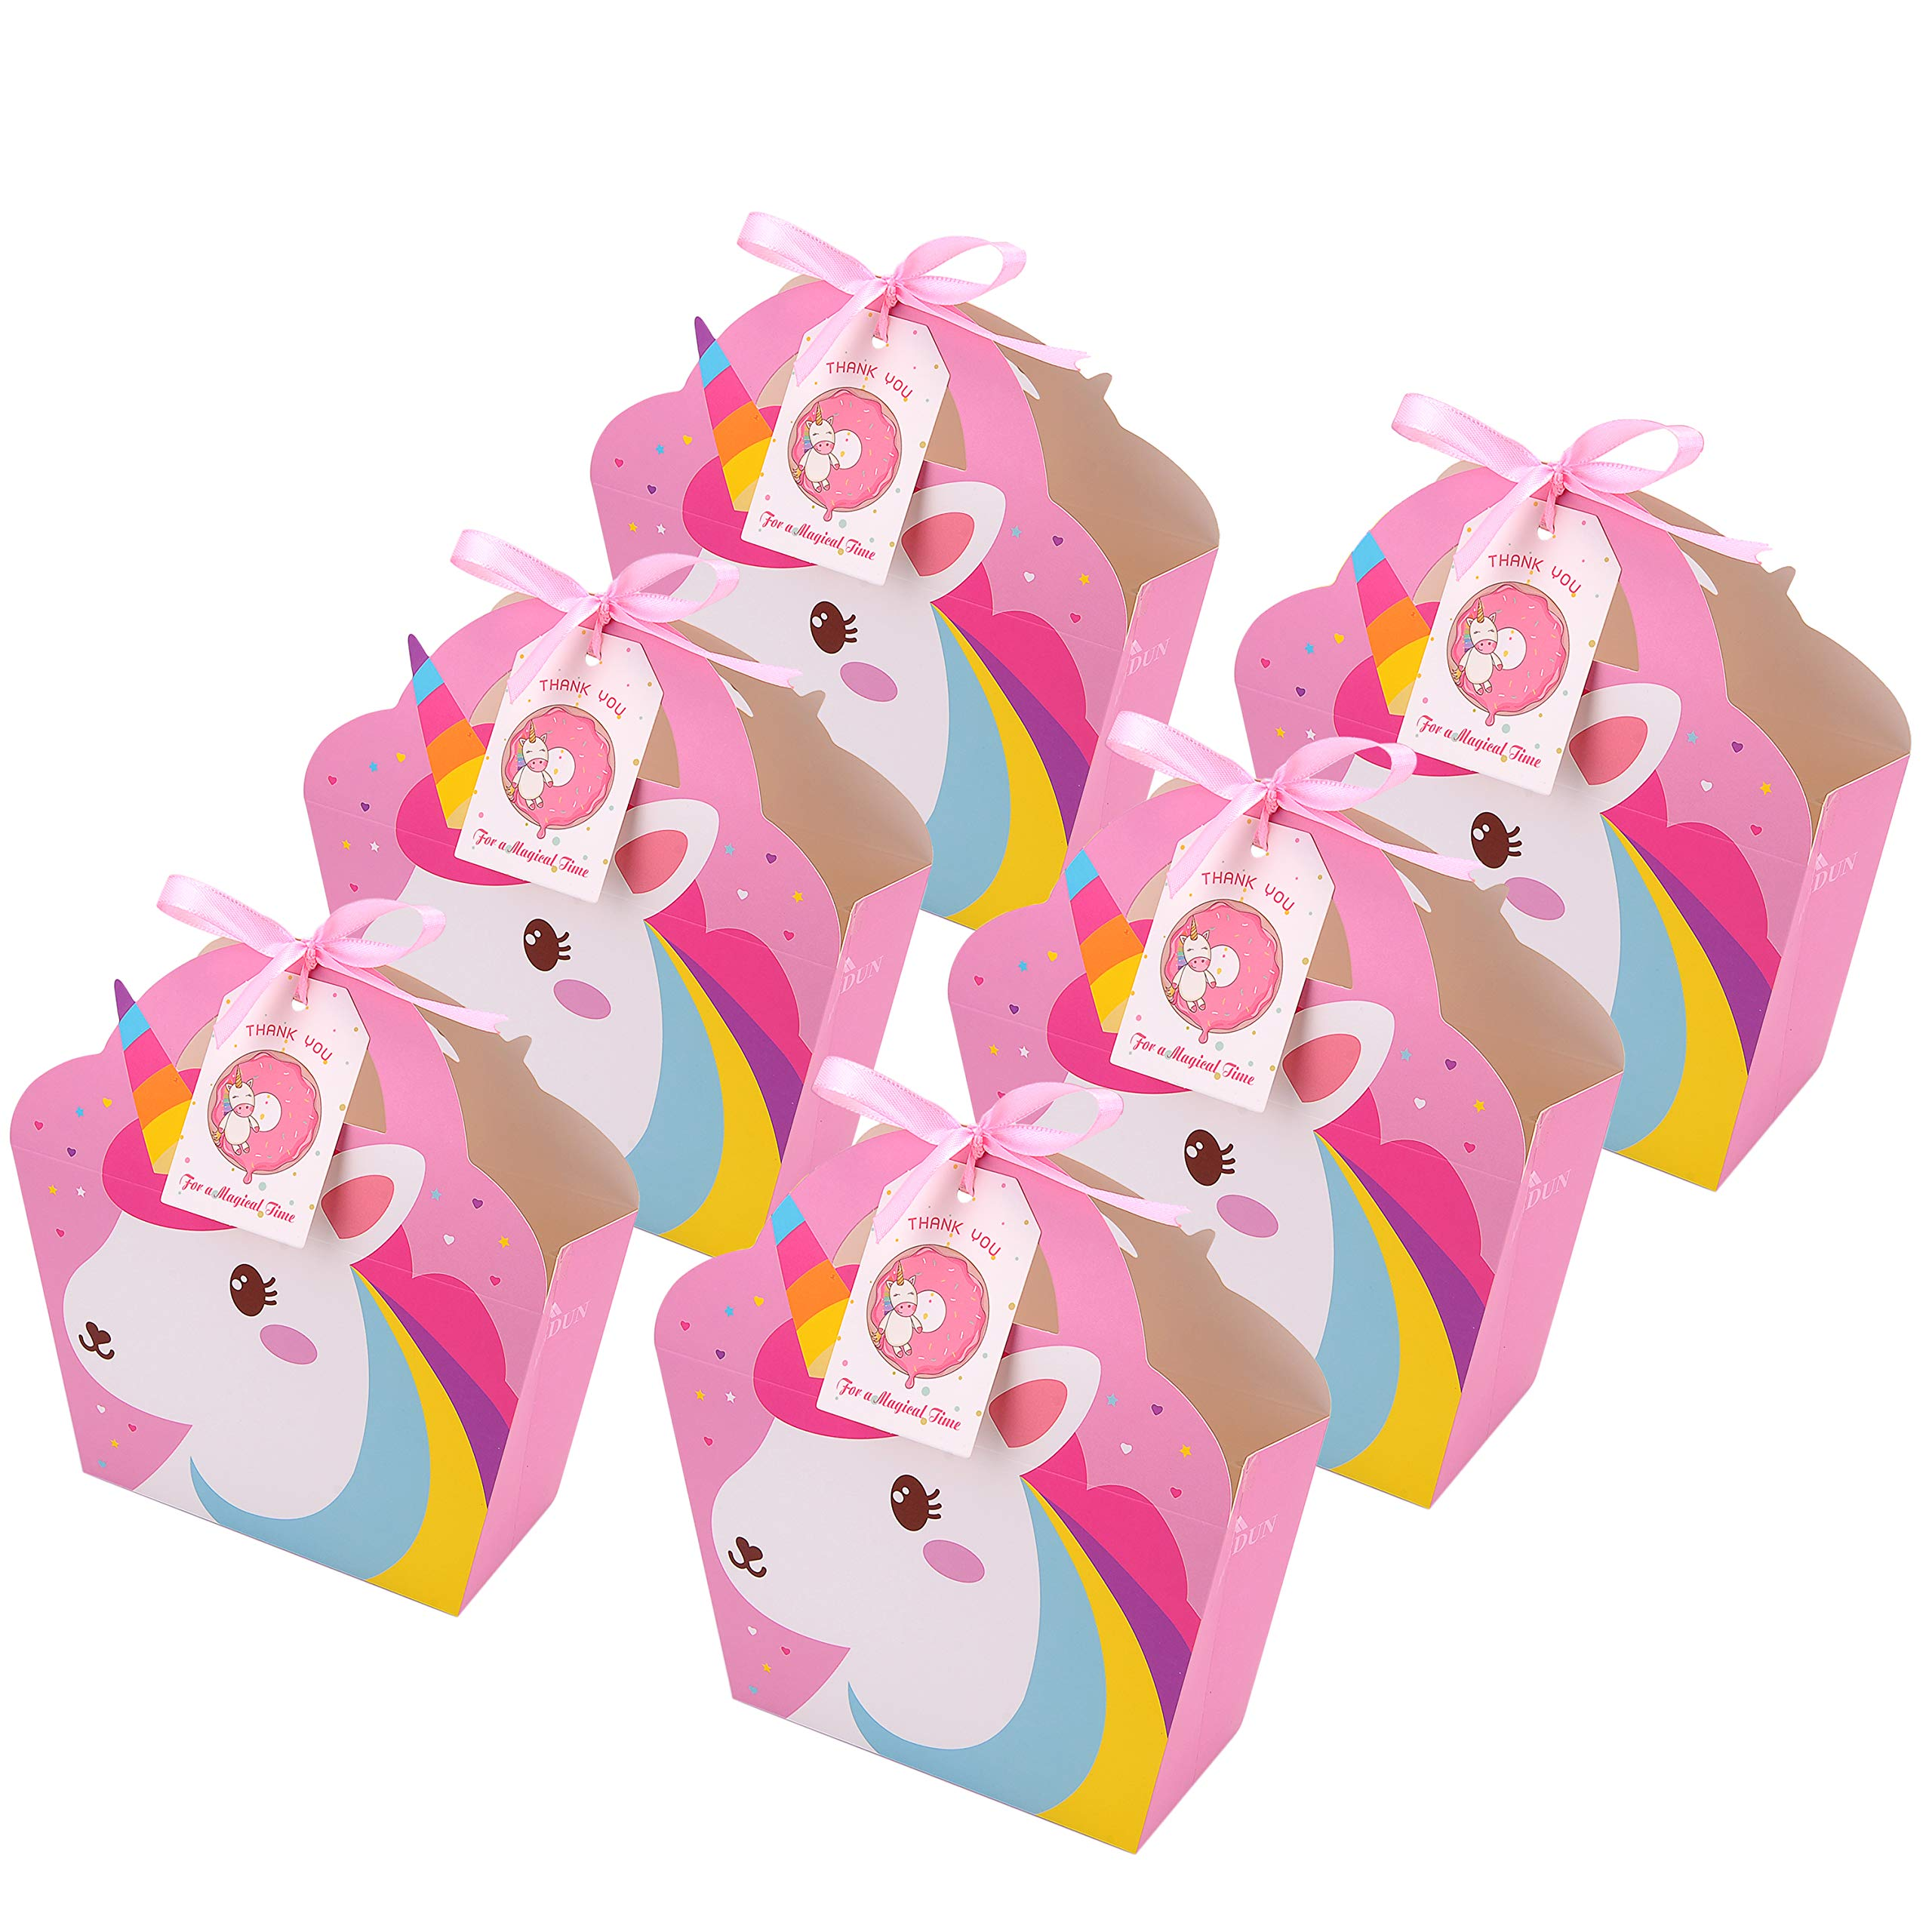 MORDUN 24 Unicorn Party Favor Bags Thank You Tags Included- Goodie Bags, Kids Birthday Party, Baby Shower, Rainbow, First Birthday, Treat Bag- Pink